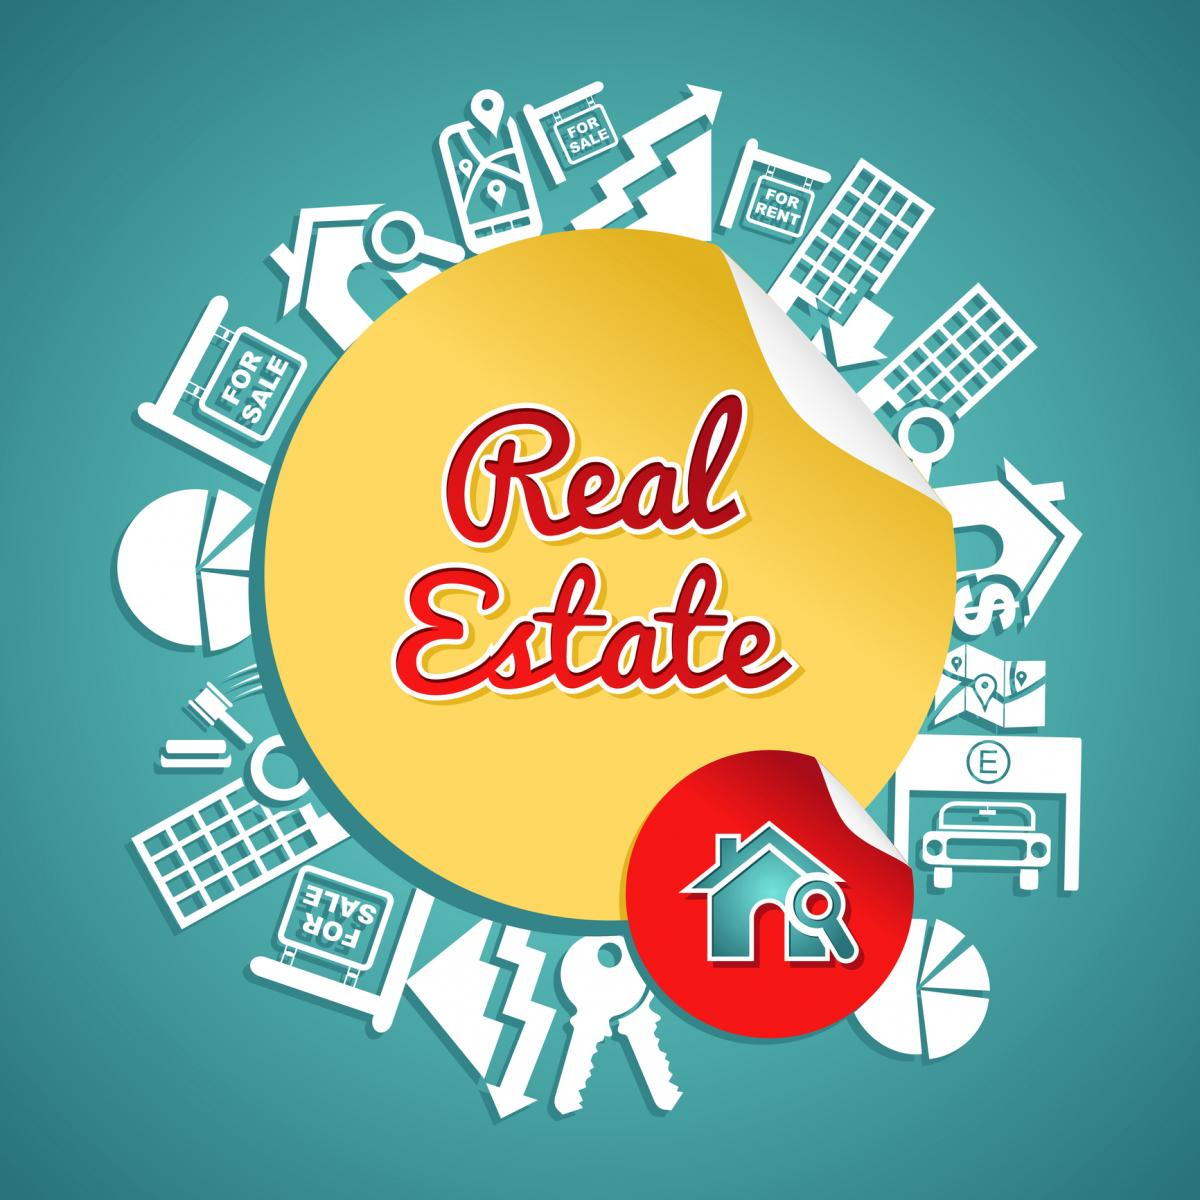 Social media strategy for a real estate pro should strongly consider creating a social media hub